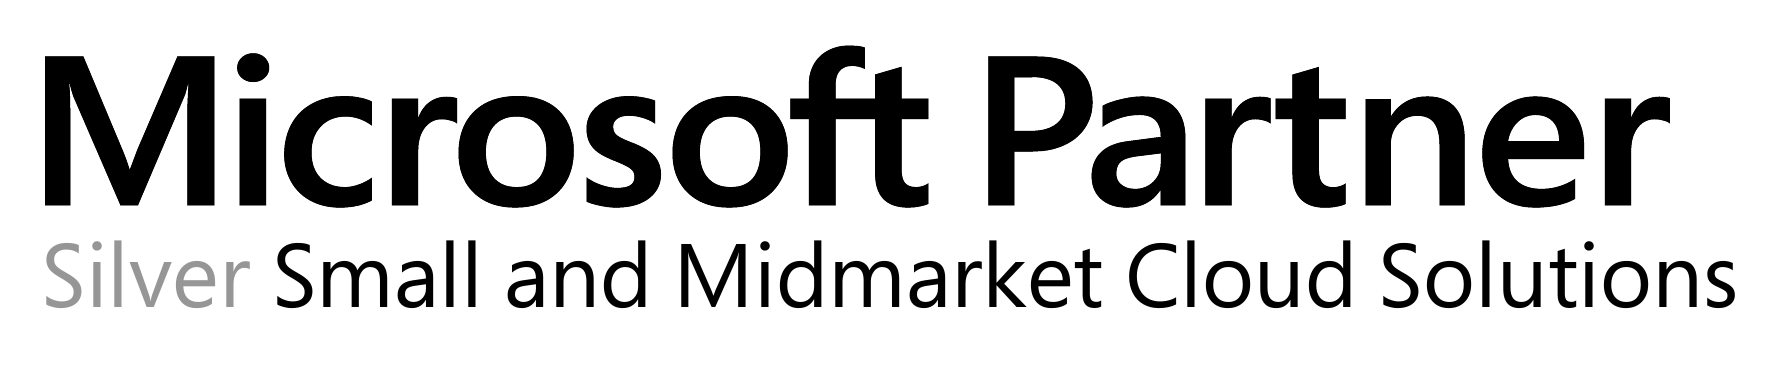 Microsoft kompetence Small and Midmarket Cloud Solutions